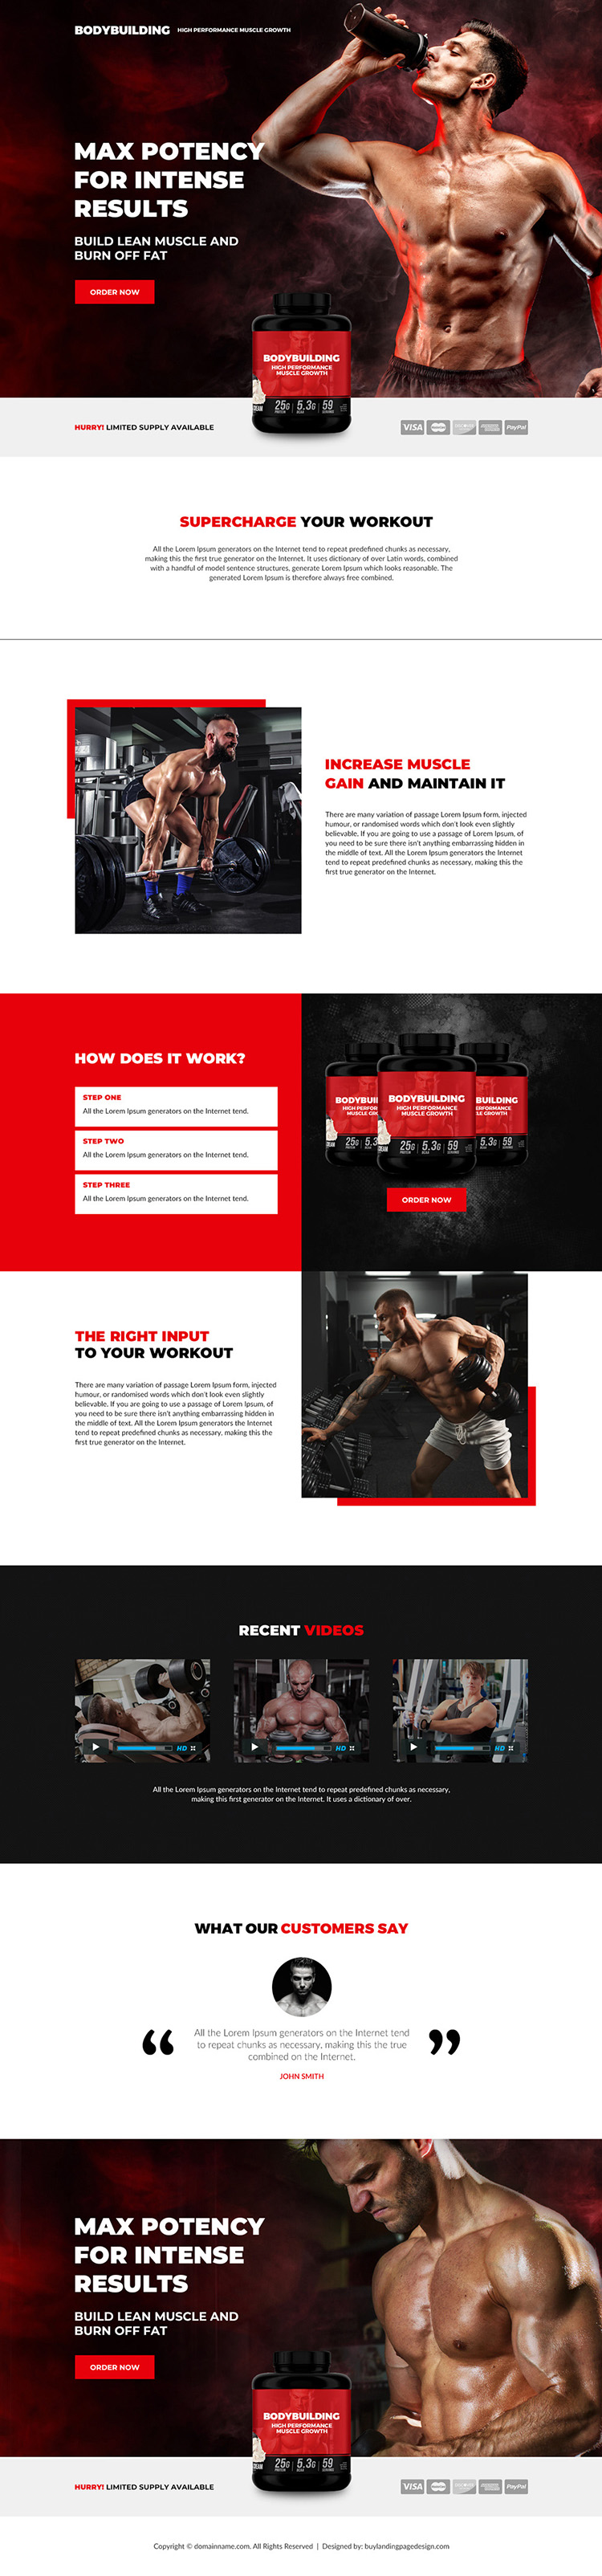 muscle growth supplement selling responsive landing page design